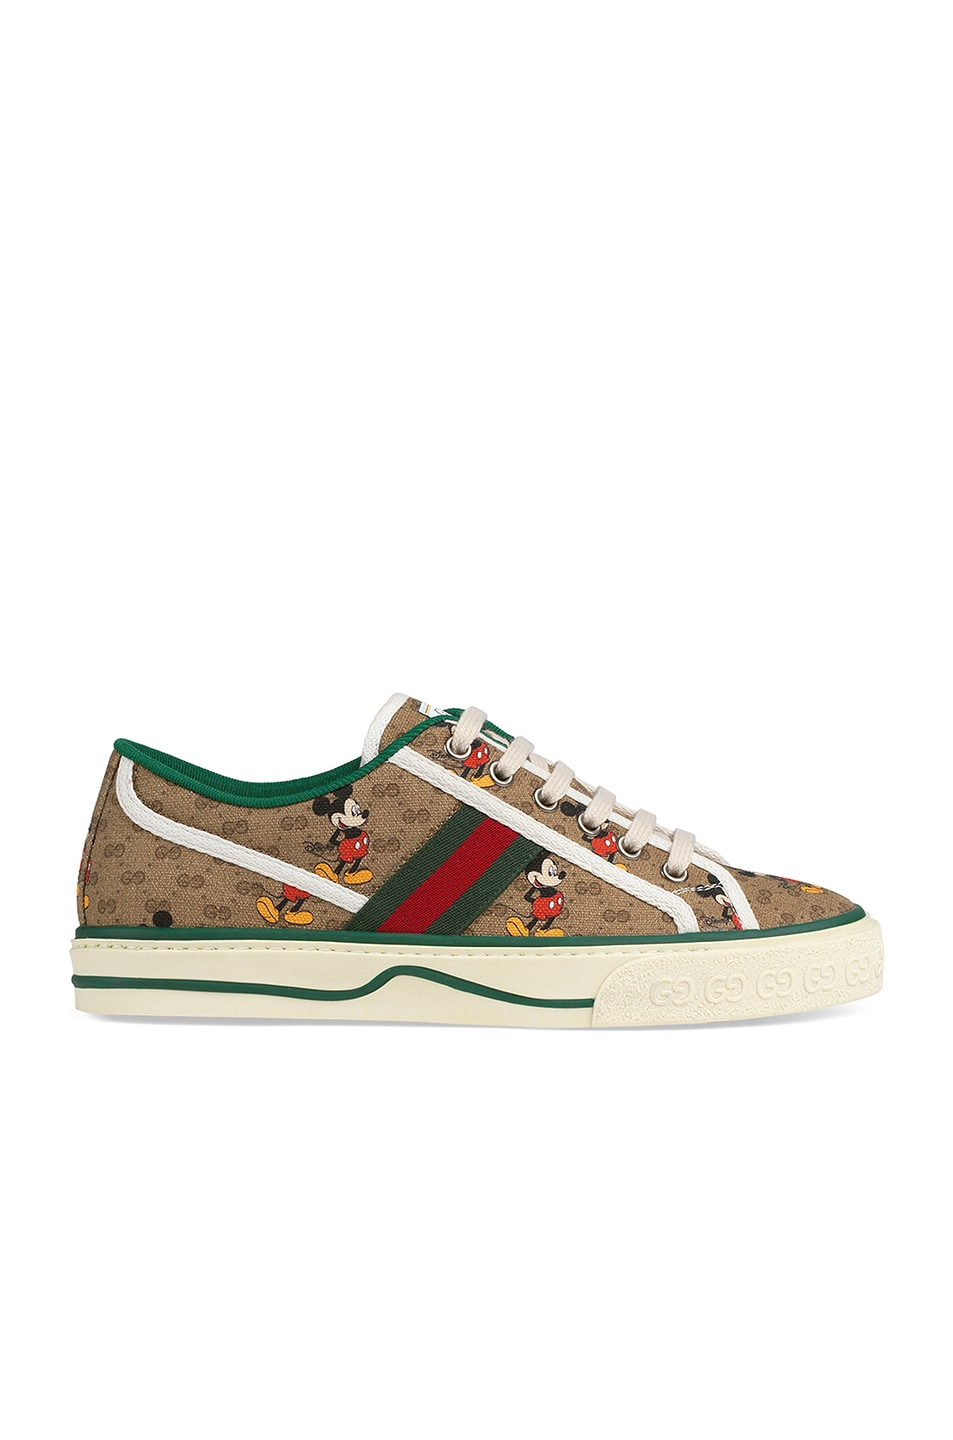 Gucci Sneakers Tennis 1977 Sneakers